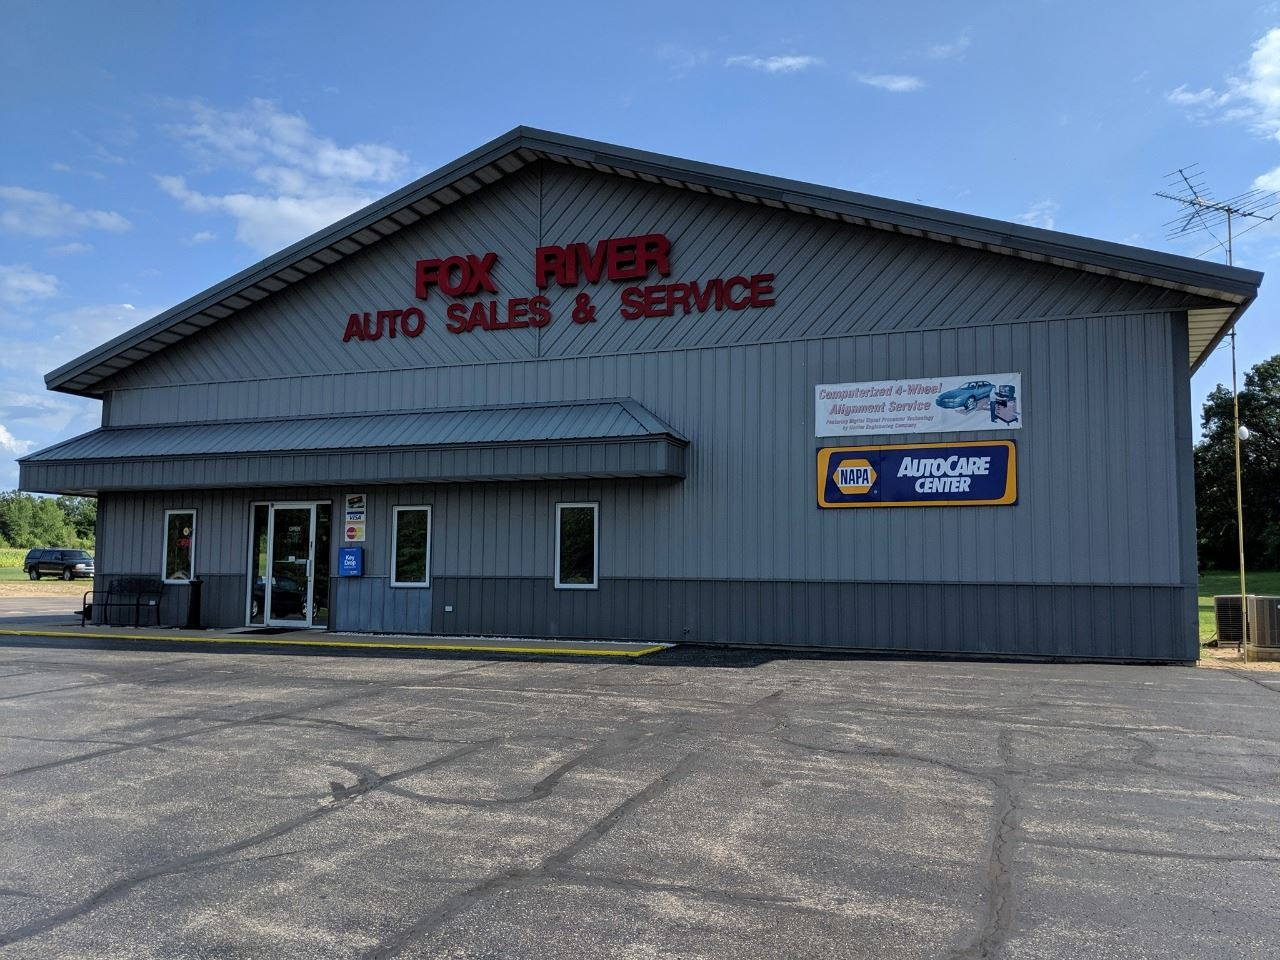 Fox River Auto Sales